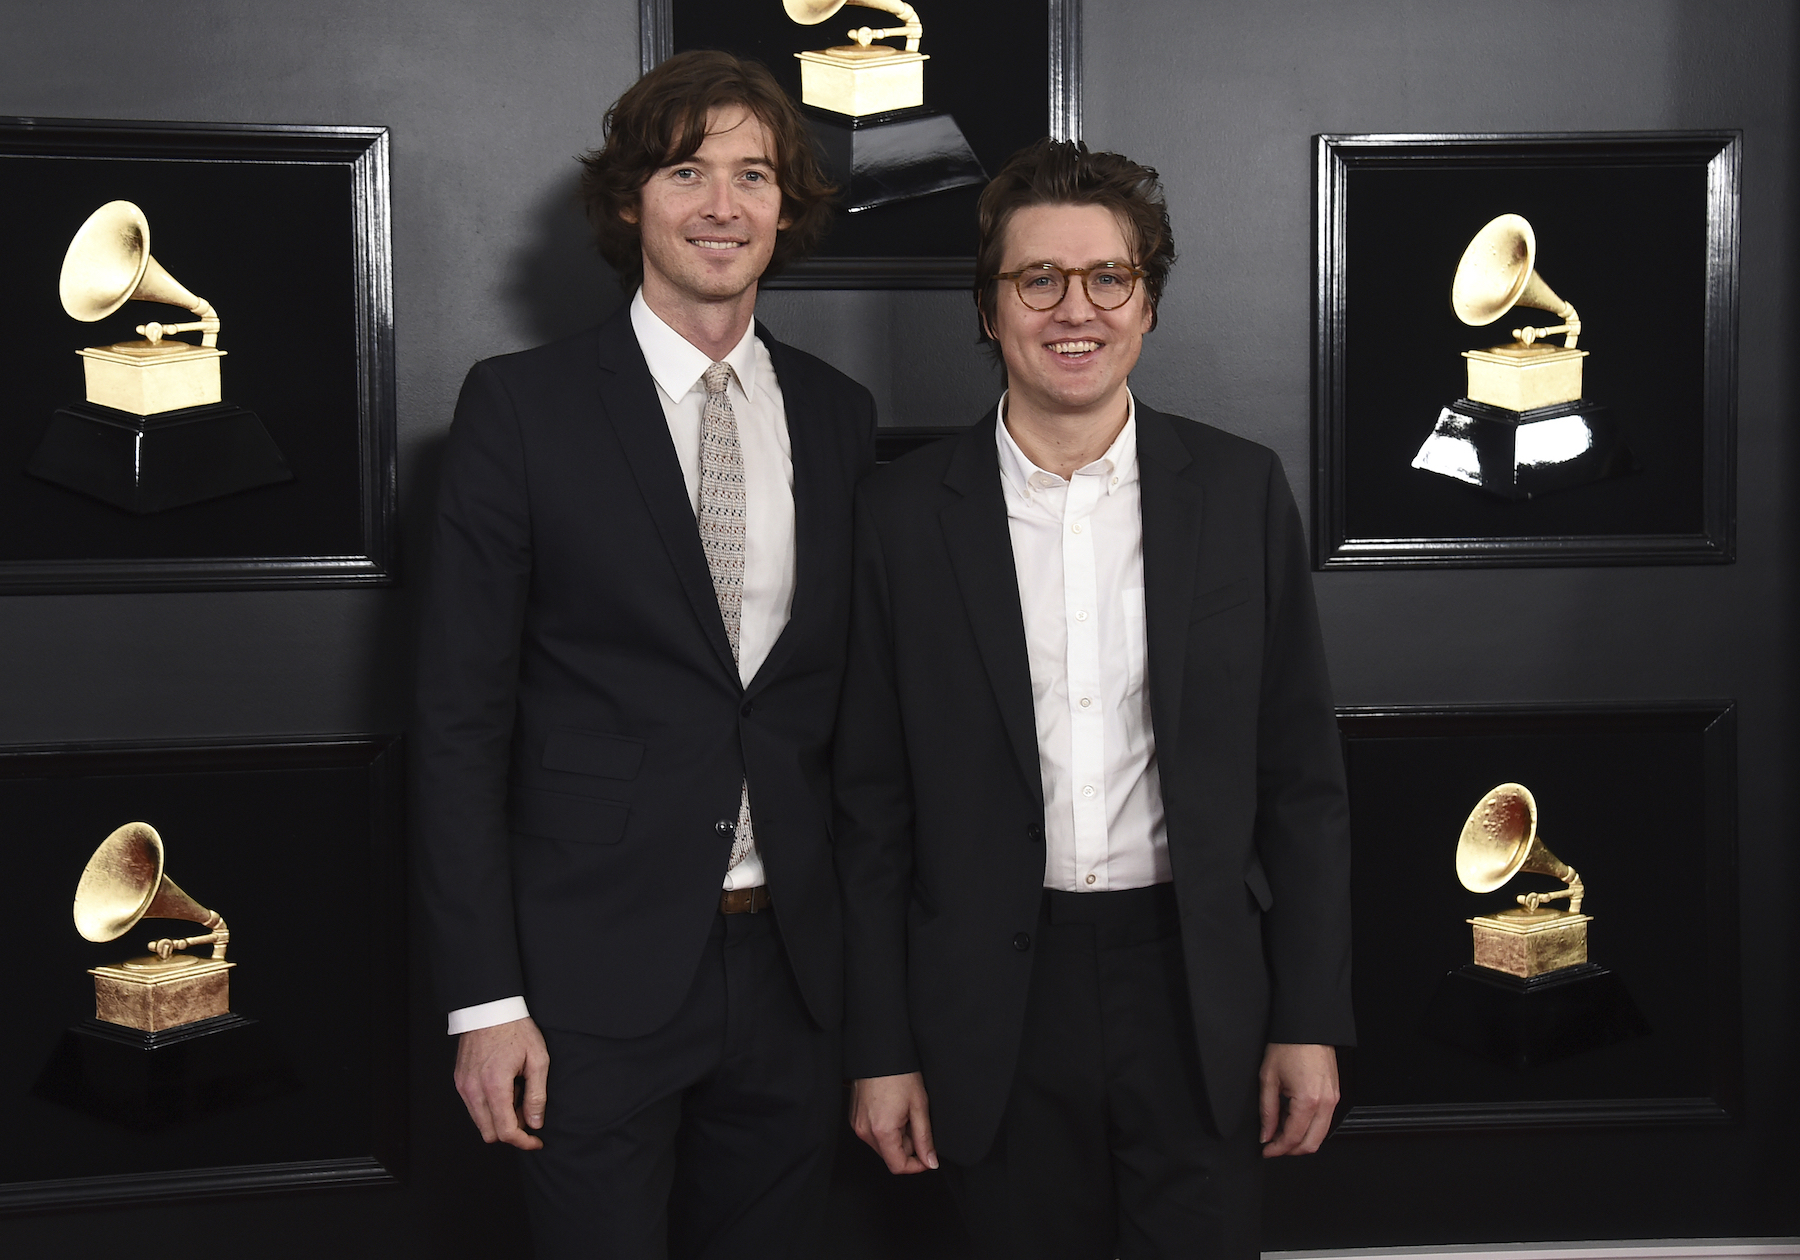 "<div class=""meta image-caption""><div class=""origin-logo origin-image ap""><span>AP</span></div><span class=""caption-text"">Joey Ryan, left, and Kenneth Pattengale of ""The Milk Carton Kids"" arrive at the 61st annual Grammy Awards at the Staples Center on Sunday, Feb. 10, 2019, in Los Angeles. (Jordan Strauss/Invision/AP)</span></div>"